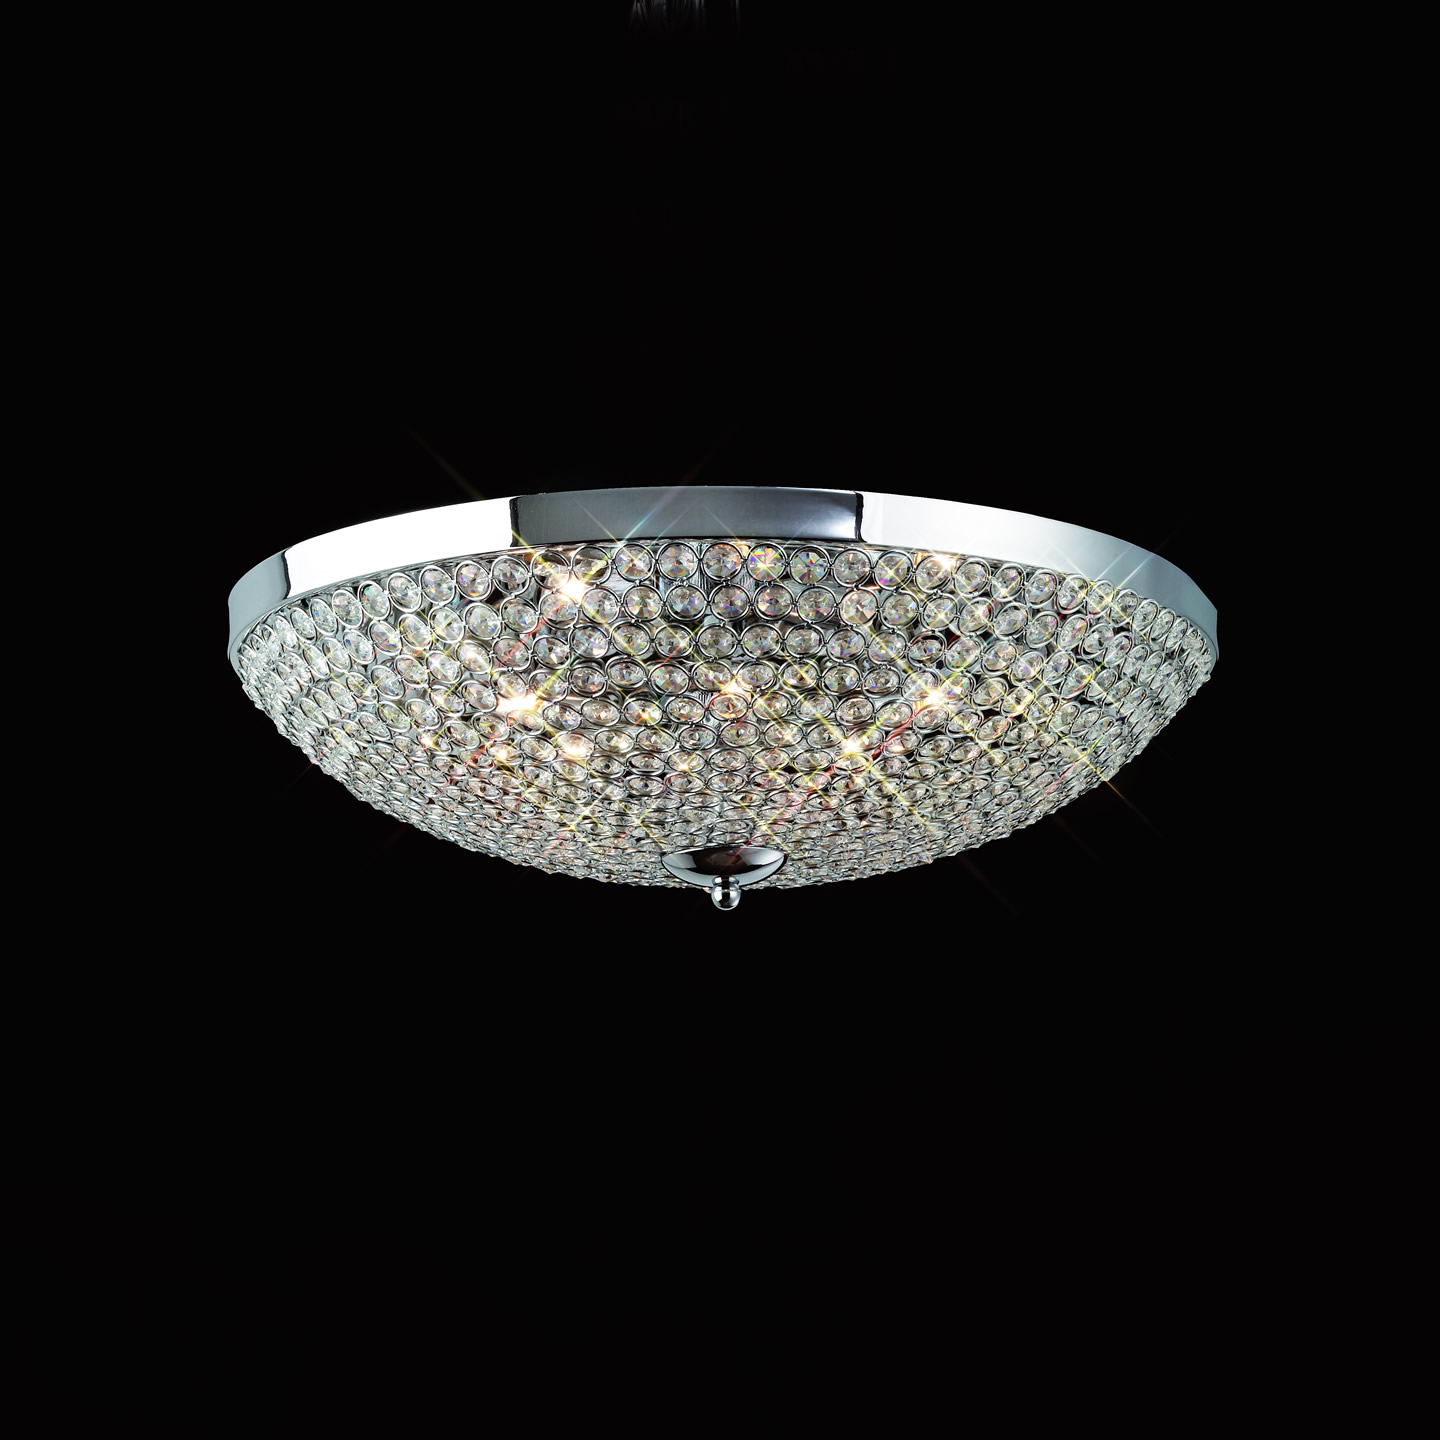 Mantra Glass 460 ceiling lamp 6L Glasses 6x40w G9 Glass